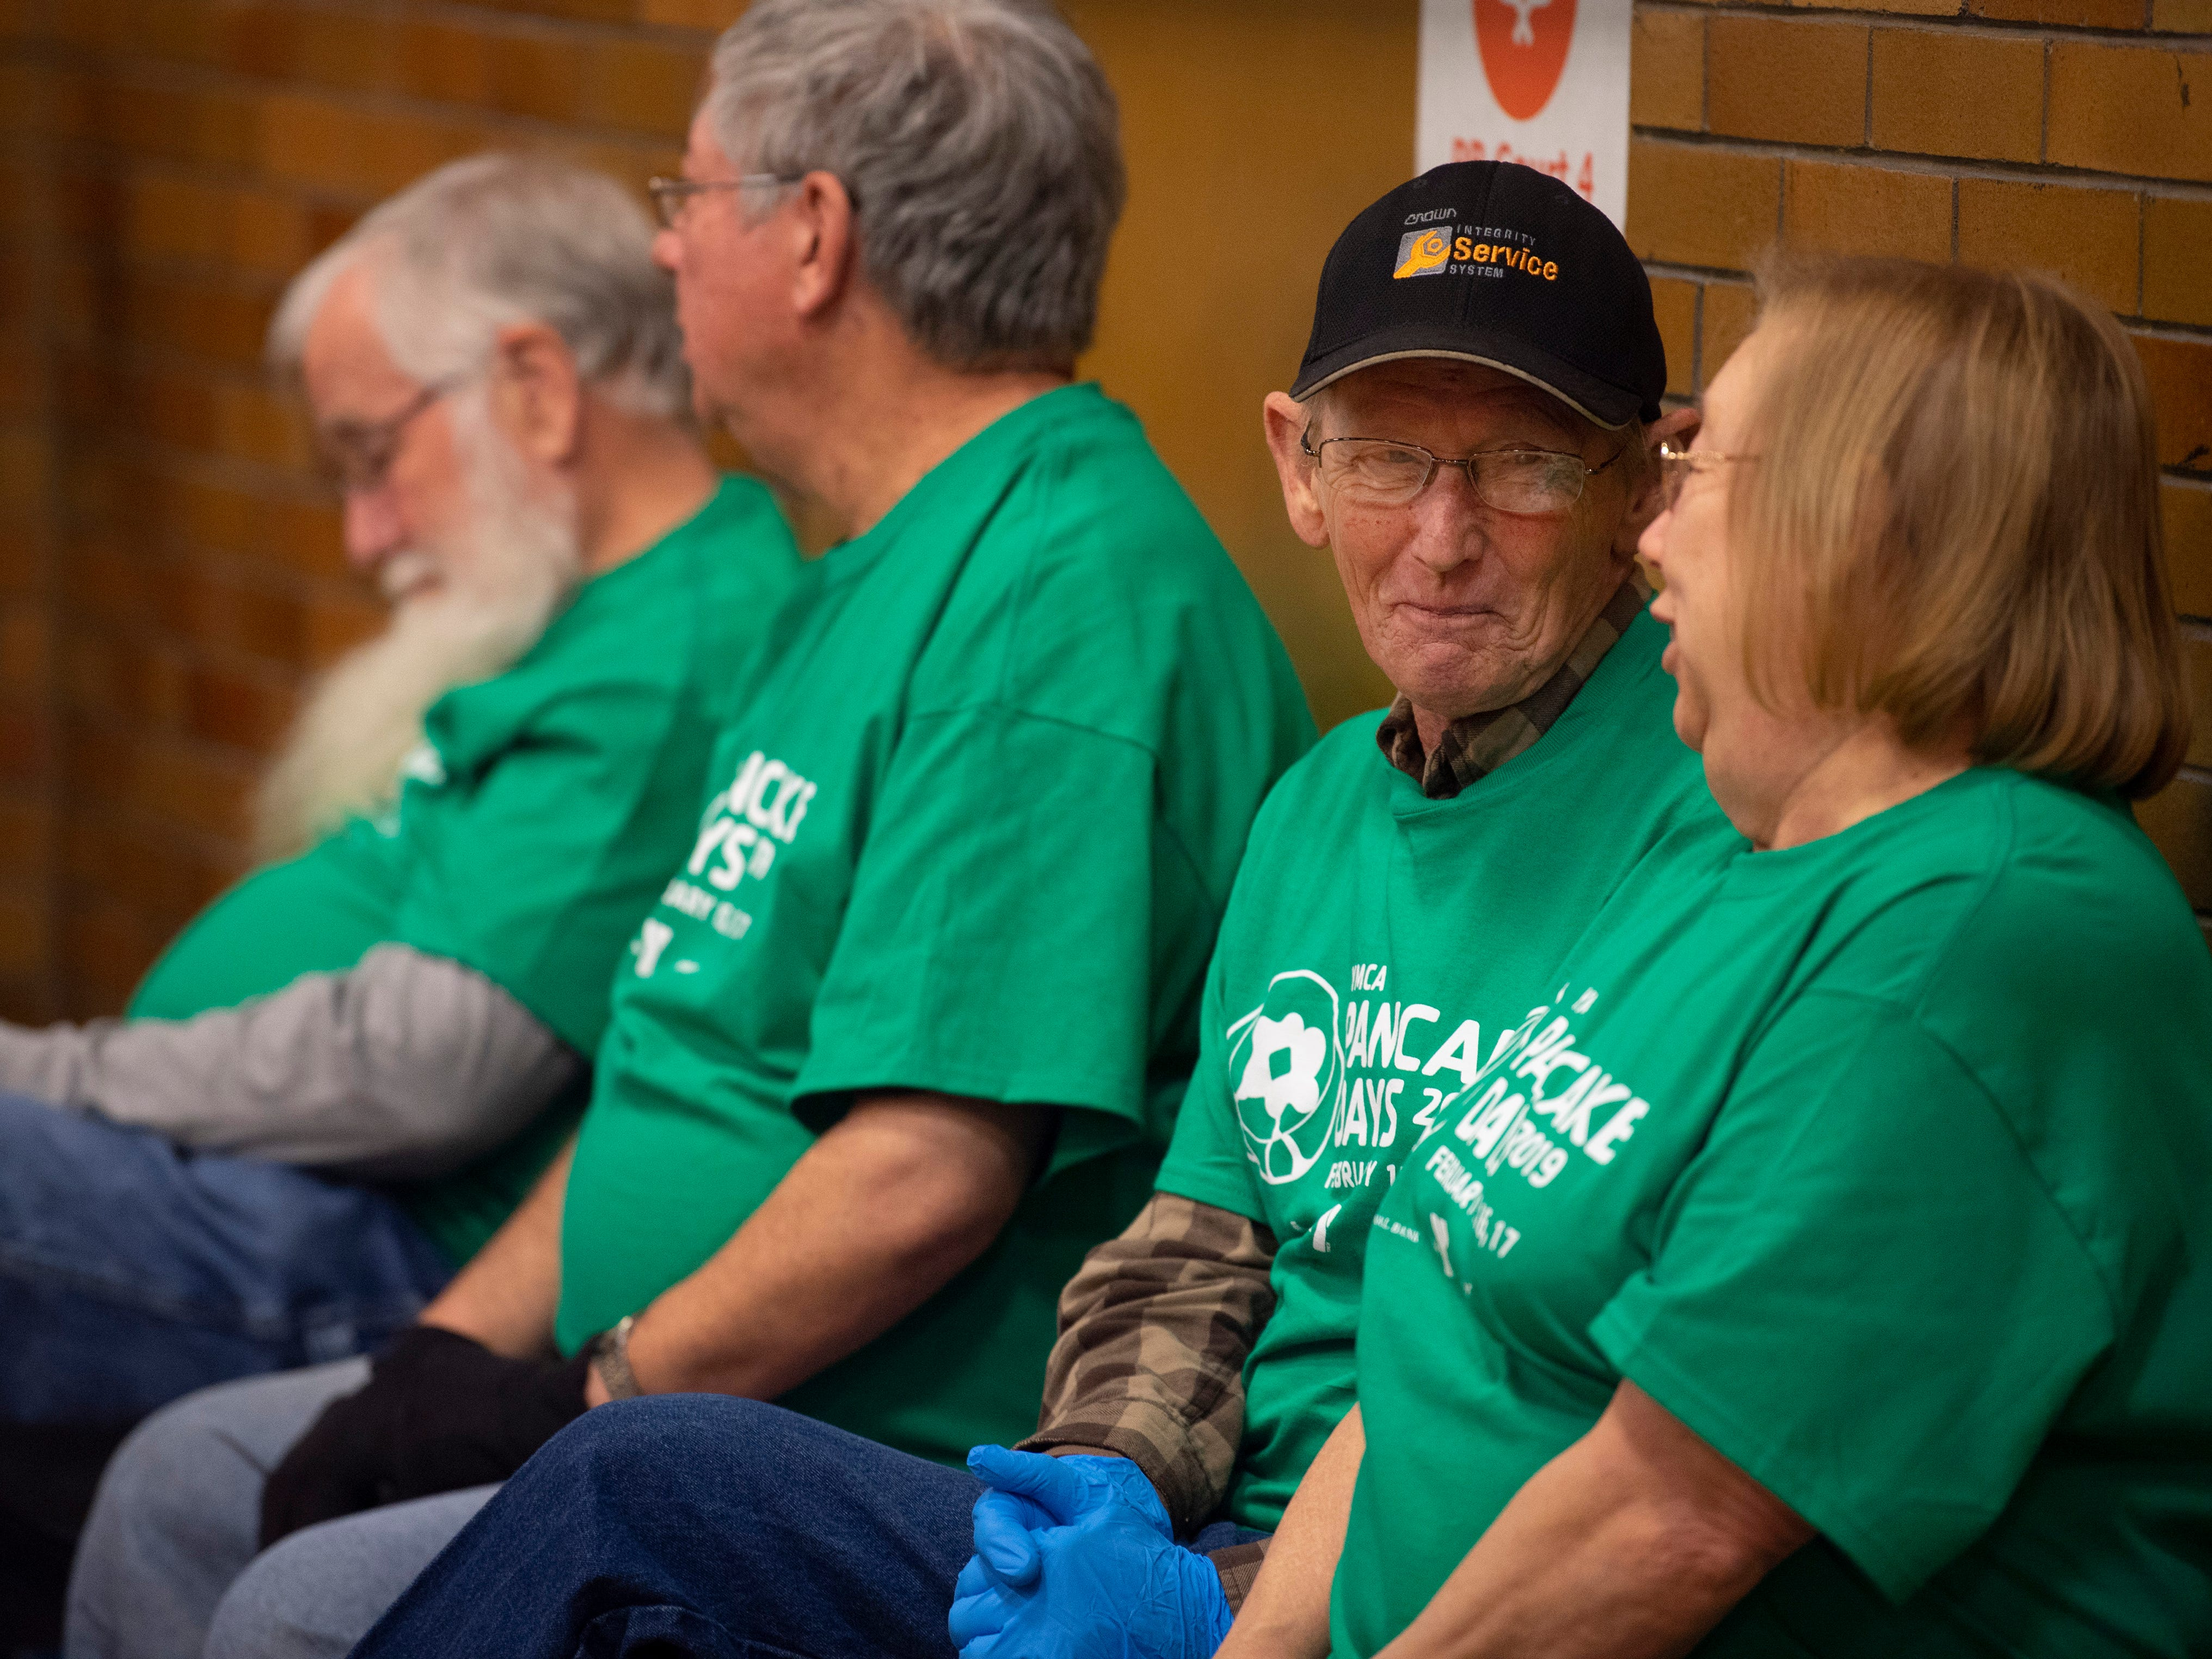 Eddie and Marilyn Pennington, right, take a break from serving coffee at the 31st Annual Pancake Days at the Downtown YMCA Friday morning. The pancakes, sausage, milk, coffee and orange juice will be served up again Saturday from 6 a.m. to 1 p.m. and Sunday from 8 a.m. to 1 p.m.